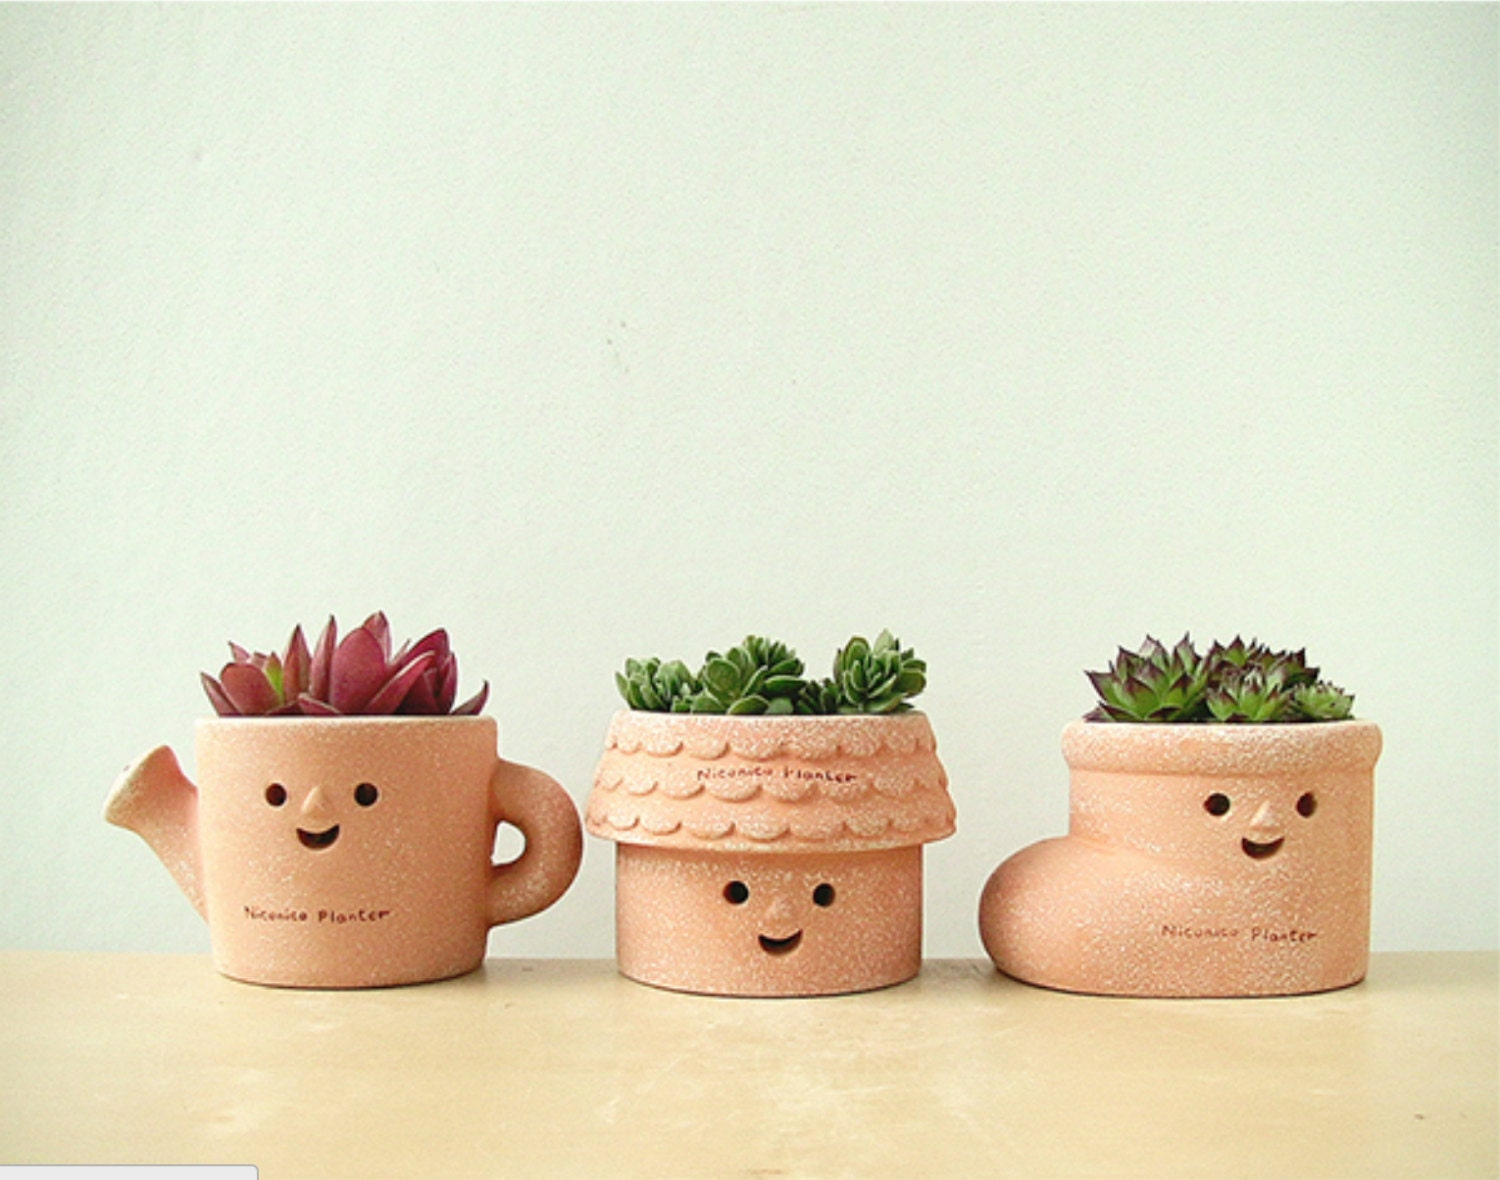 out of sotck cute clay planters succulent planter cute set